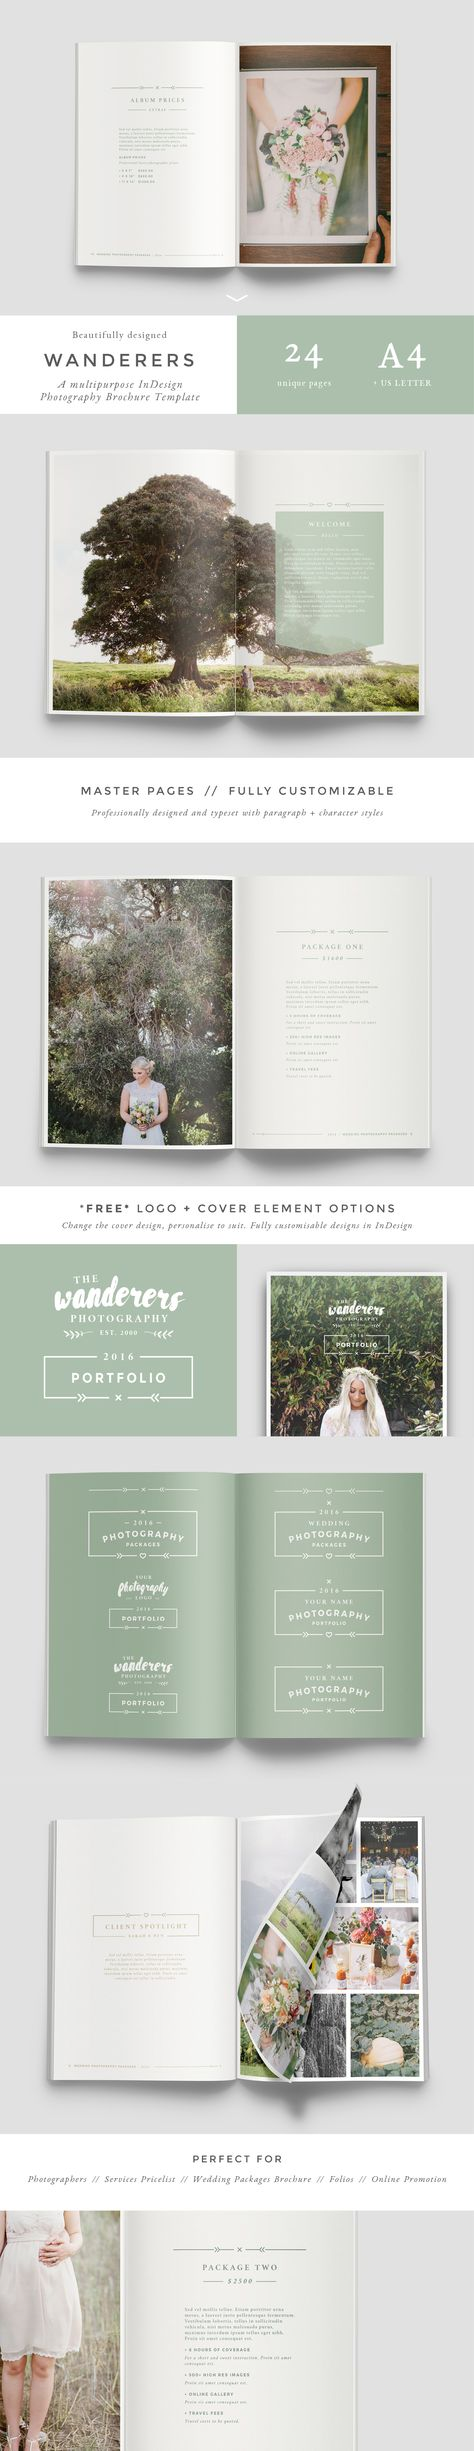 photographer cover letter%0A Photography Pricing Sheet Template  Price List Guide  Wedding Photographer  Photo Print Investment Collections  PG      Personal Branding    Pinterest